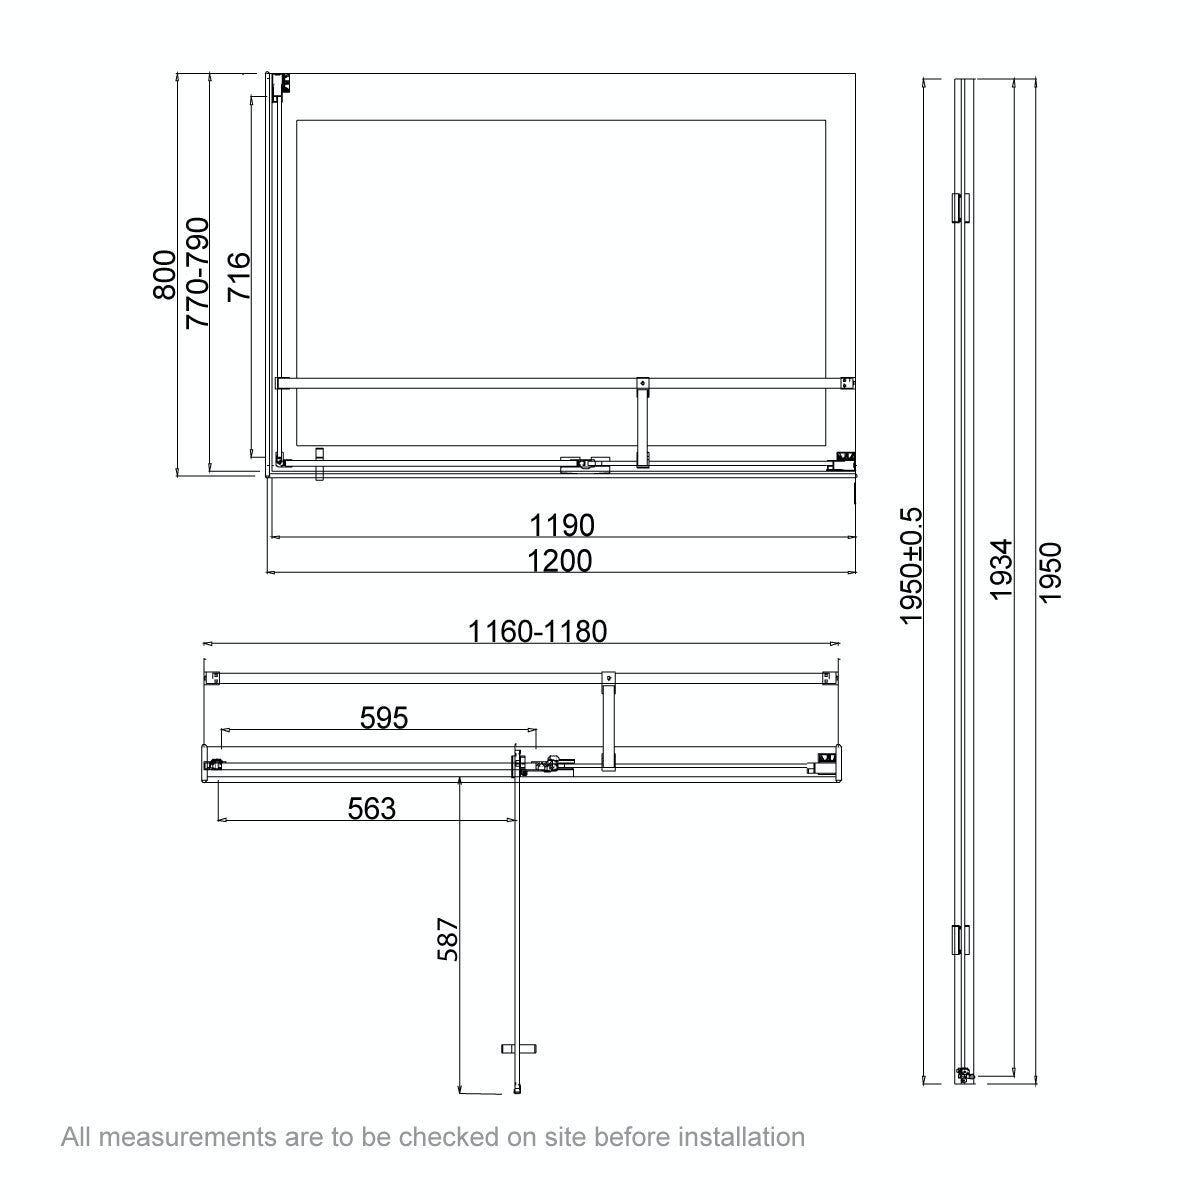 Dimensions for 1200 x 800